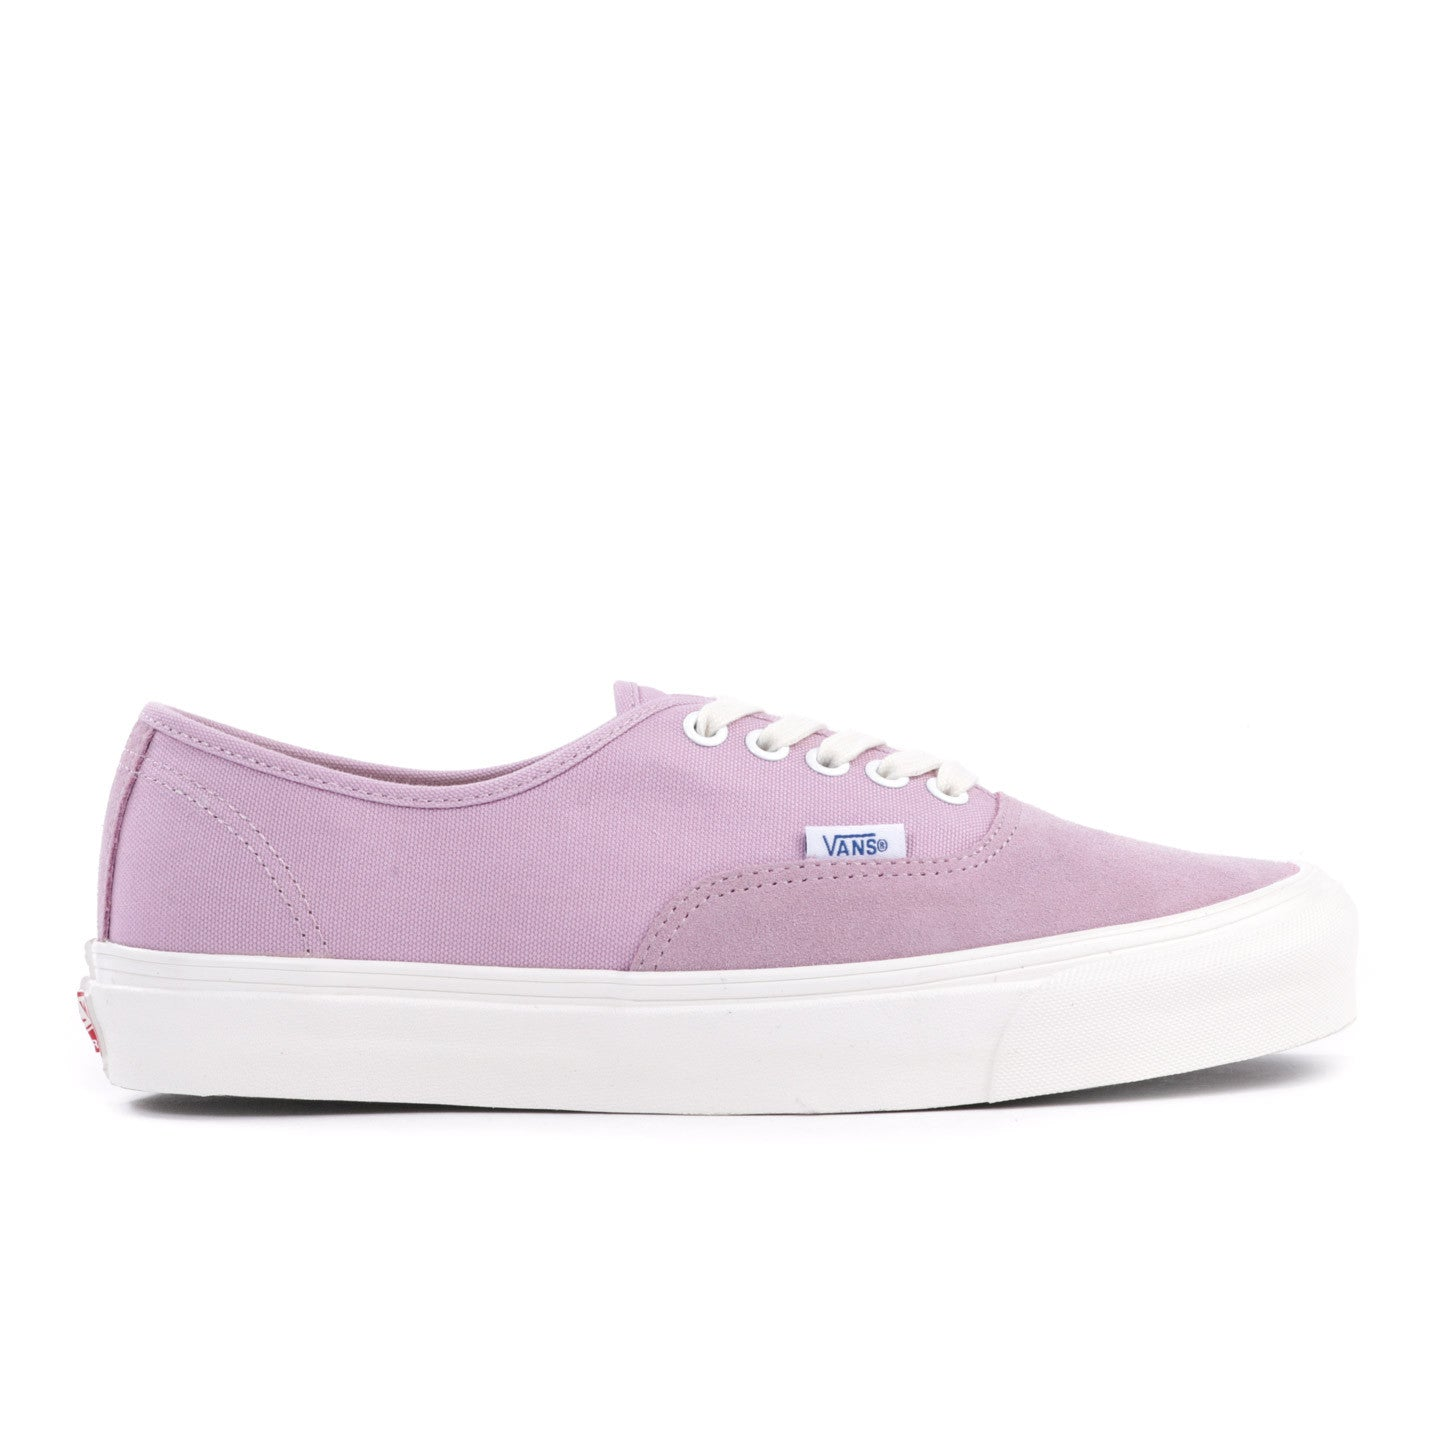 20335ddfb5 VAULT BY VANS OG AUTHENTIC LX FRAGRANT LILAC